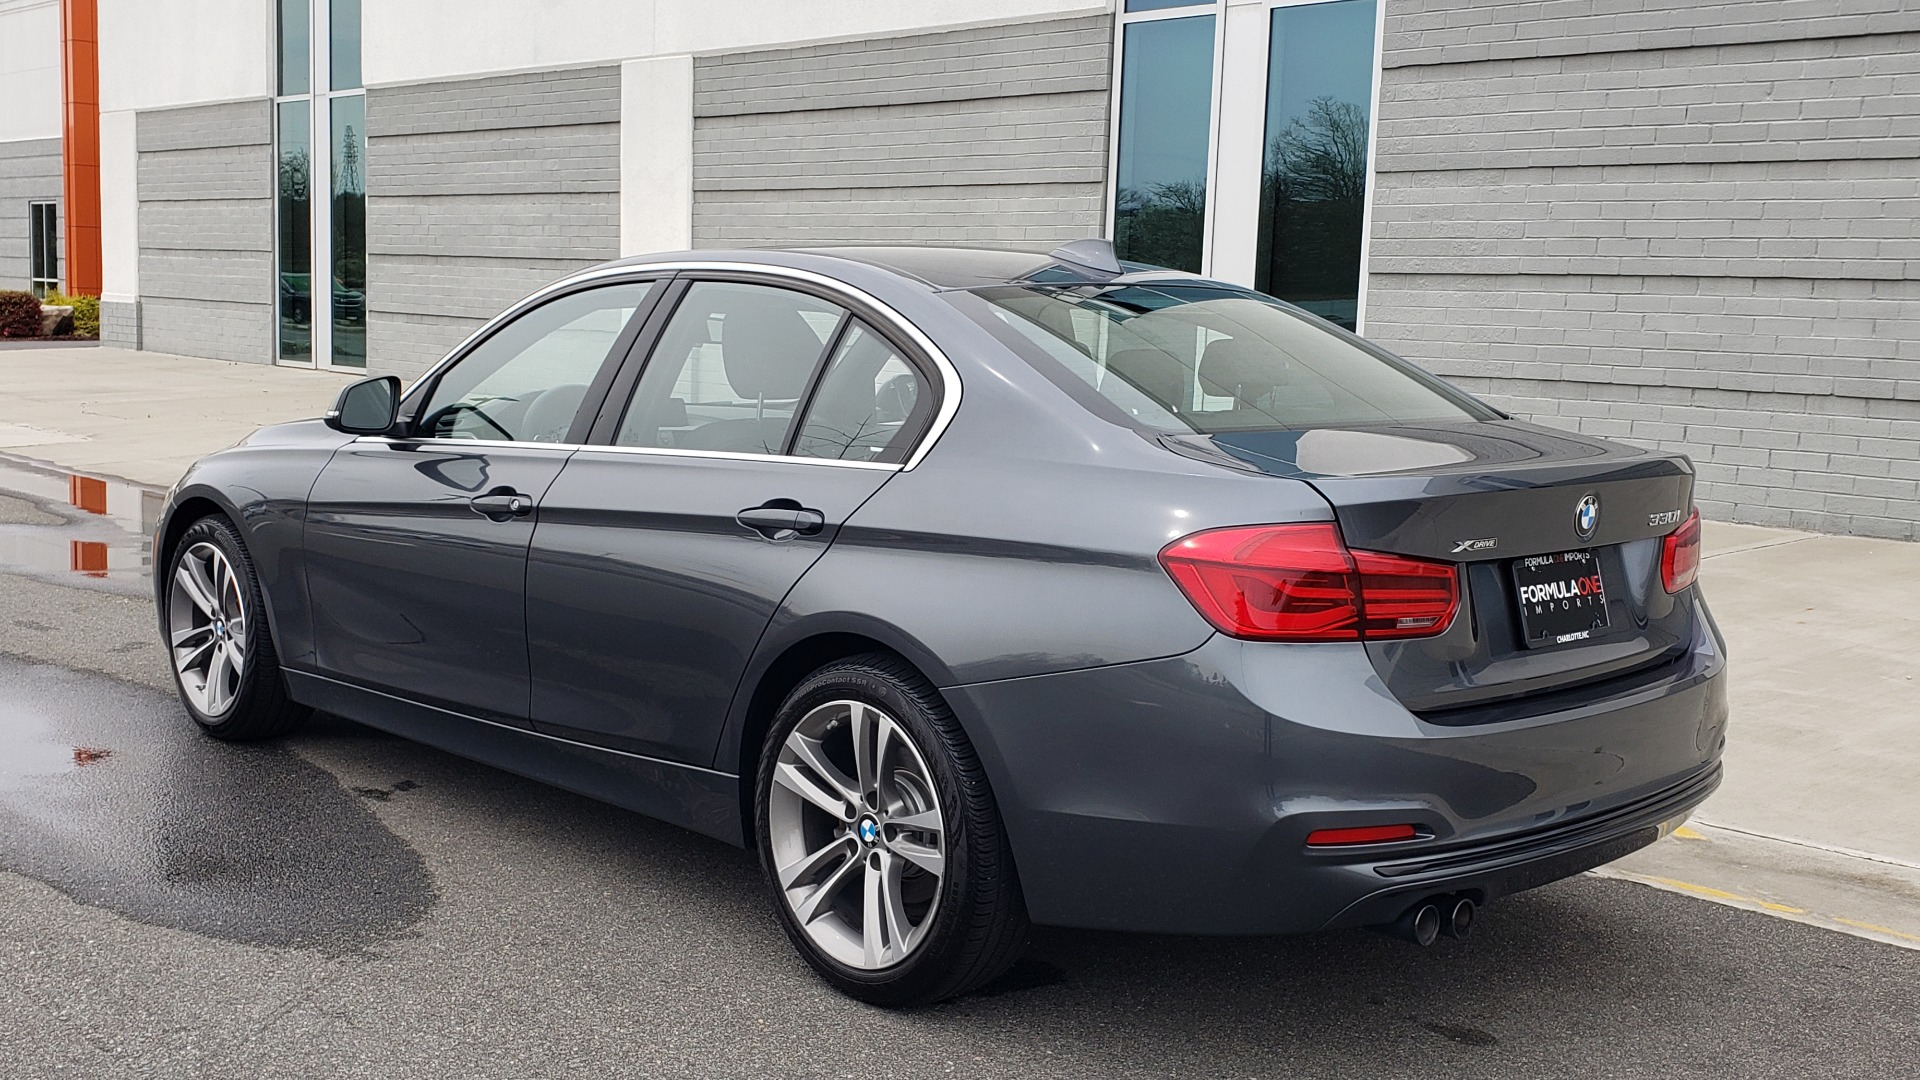 Used 2018 BMW 3 SERIES 330I XDRIVE PREMIUM / CONV PKG NAV / BLIND SPOT / HTD STS / REARVIEW for sale $22,695 at Formula Imports in Charlotte NC 28227 9